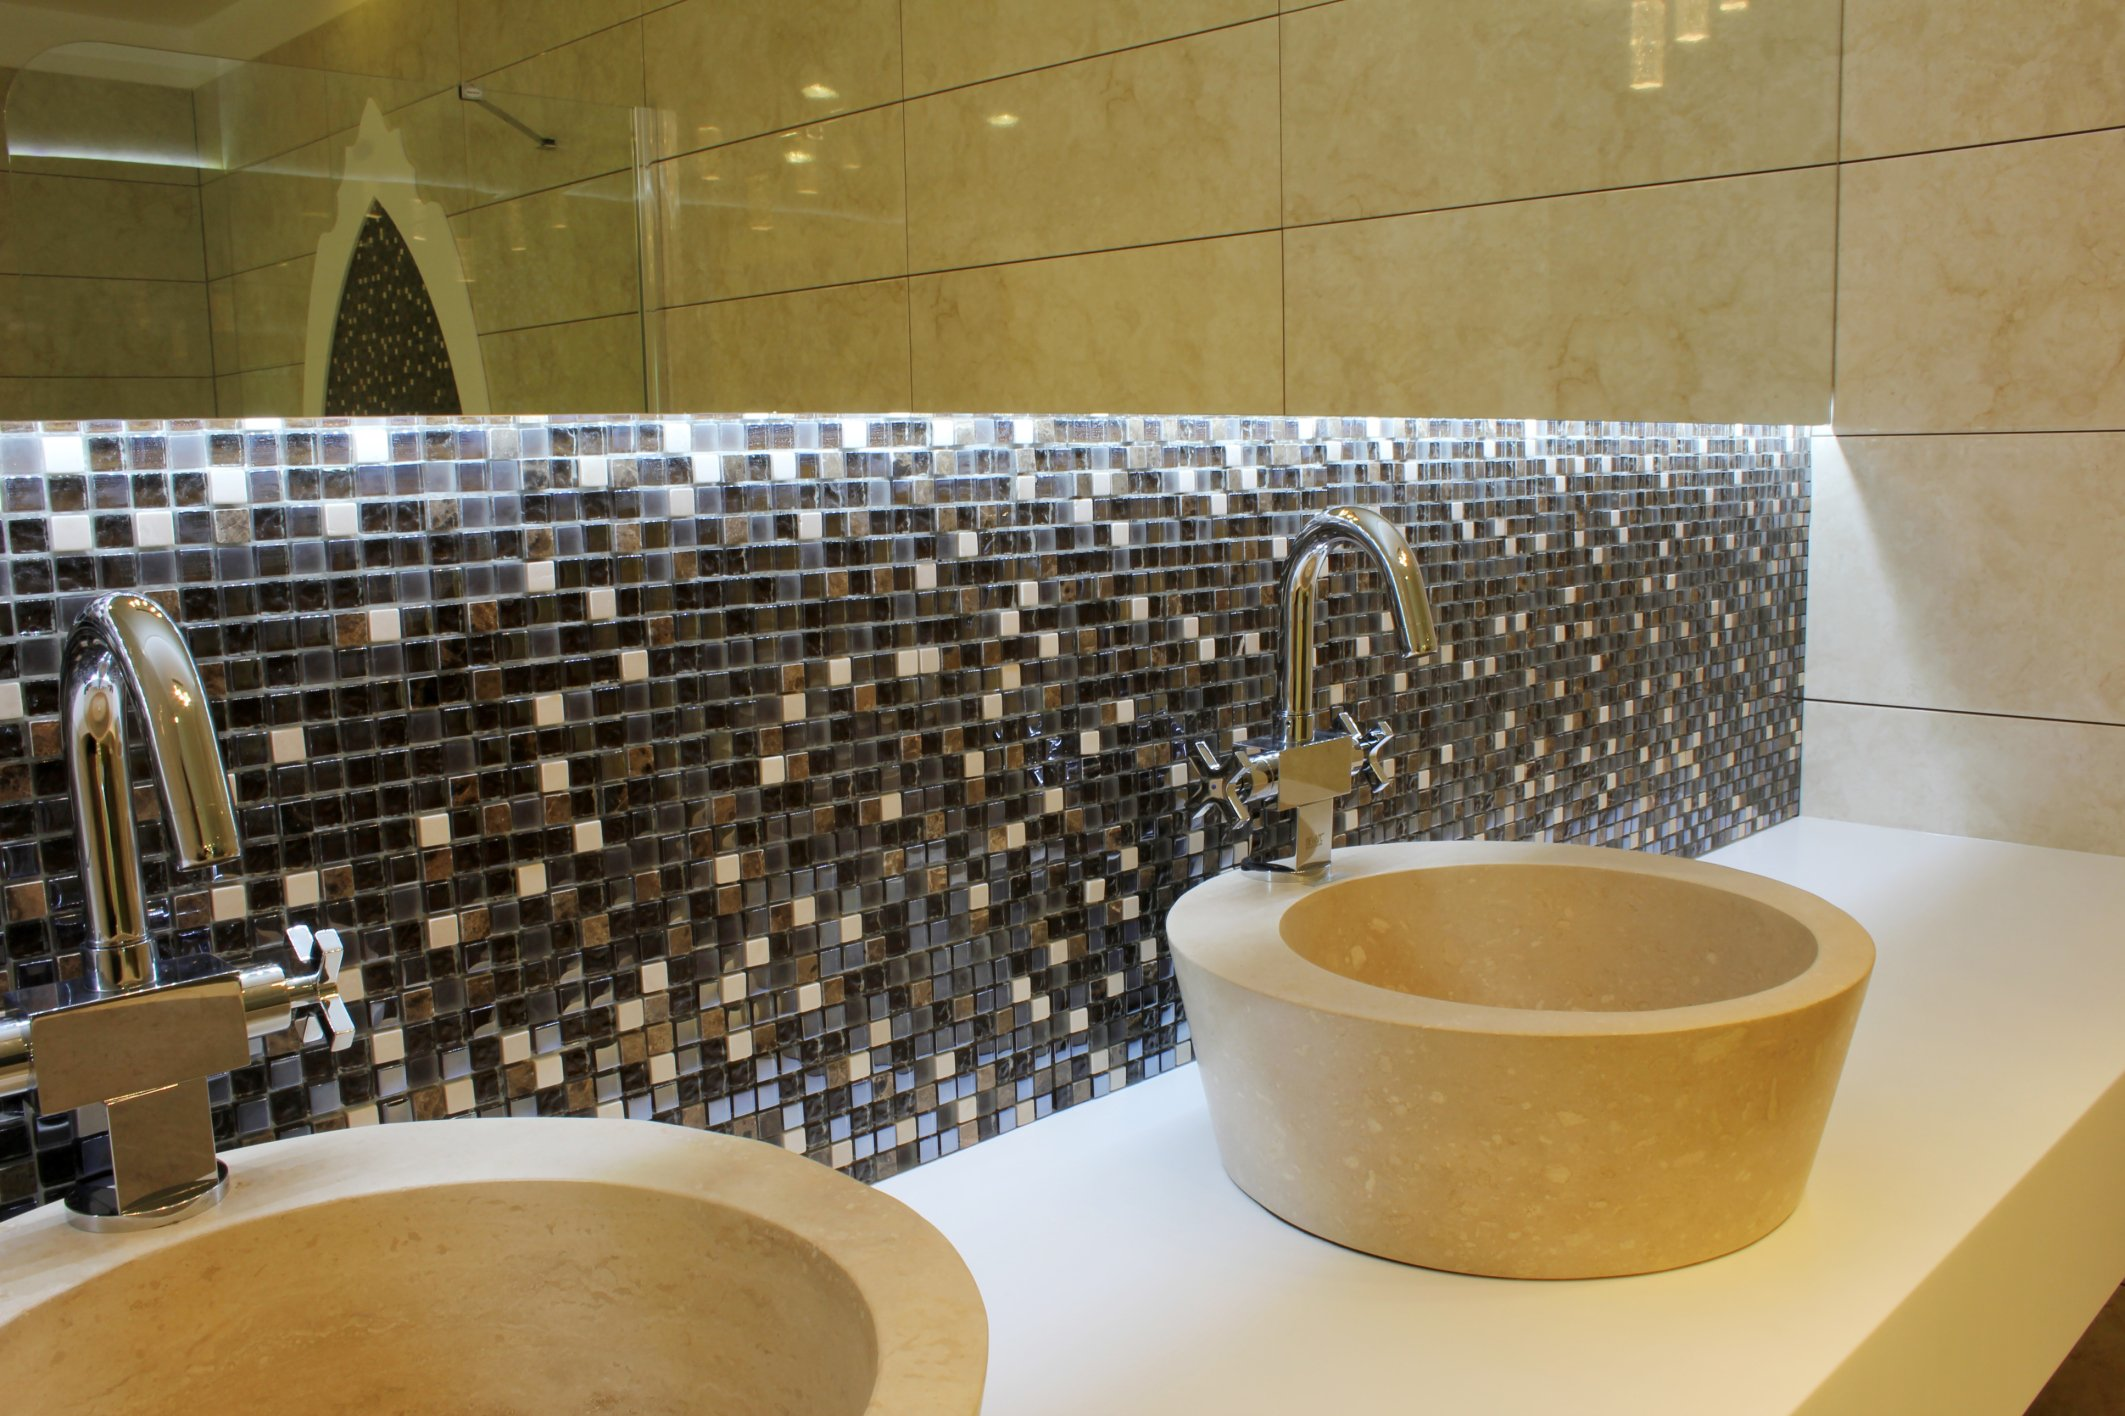 u re embark rebath pictures bathroom beaufiful projects bath chattanooga antonio images current of decorating home san tx tn remodeling s arlington best